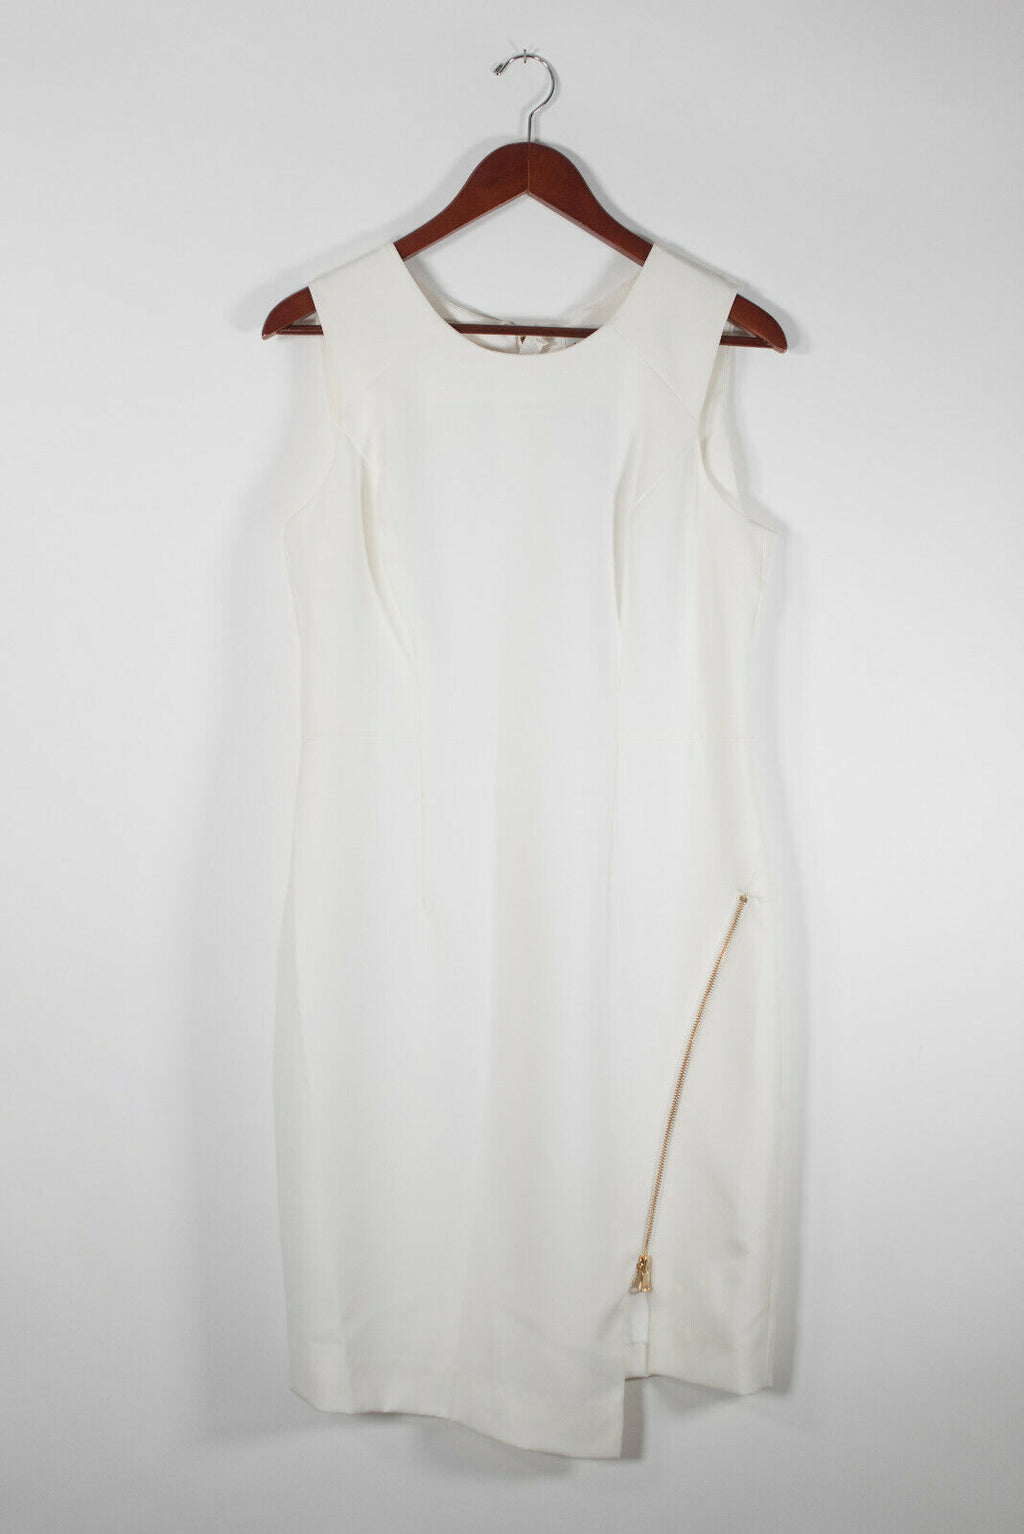 Milly Size 10 White Asymmetrical Zipper Dress NWT